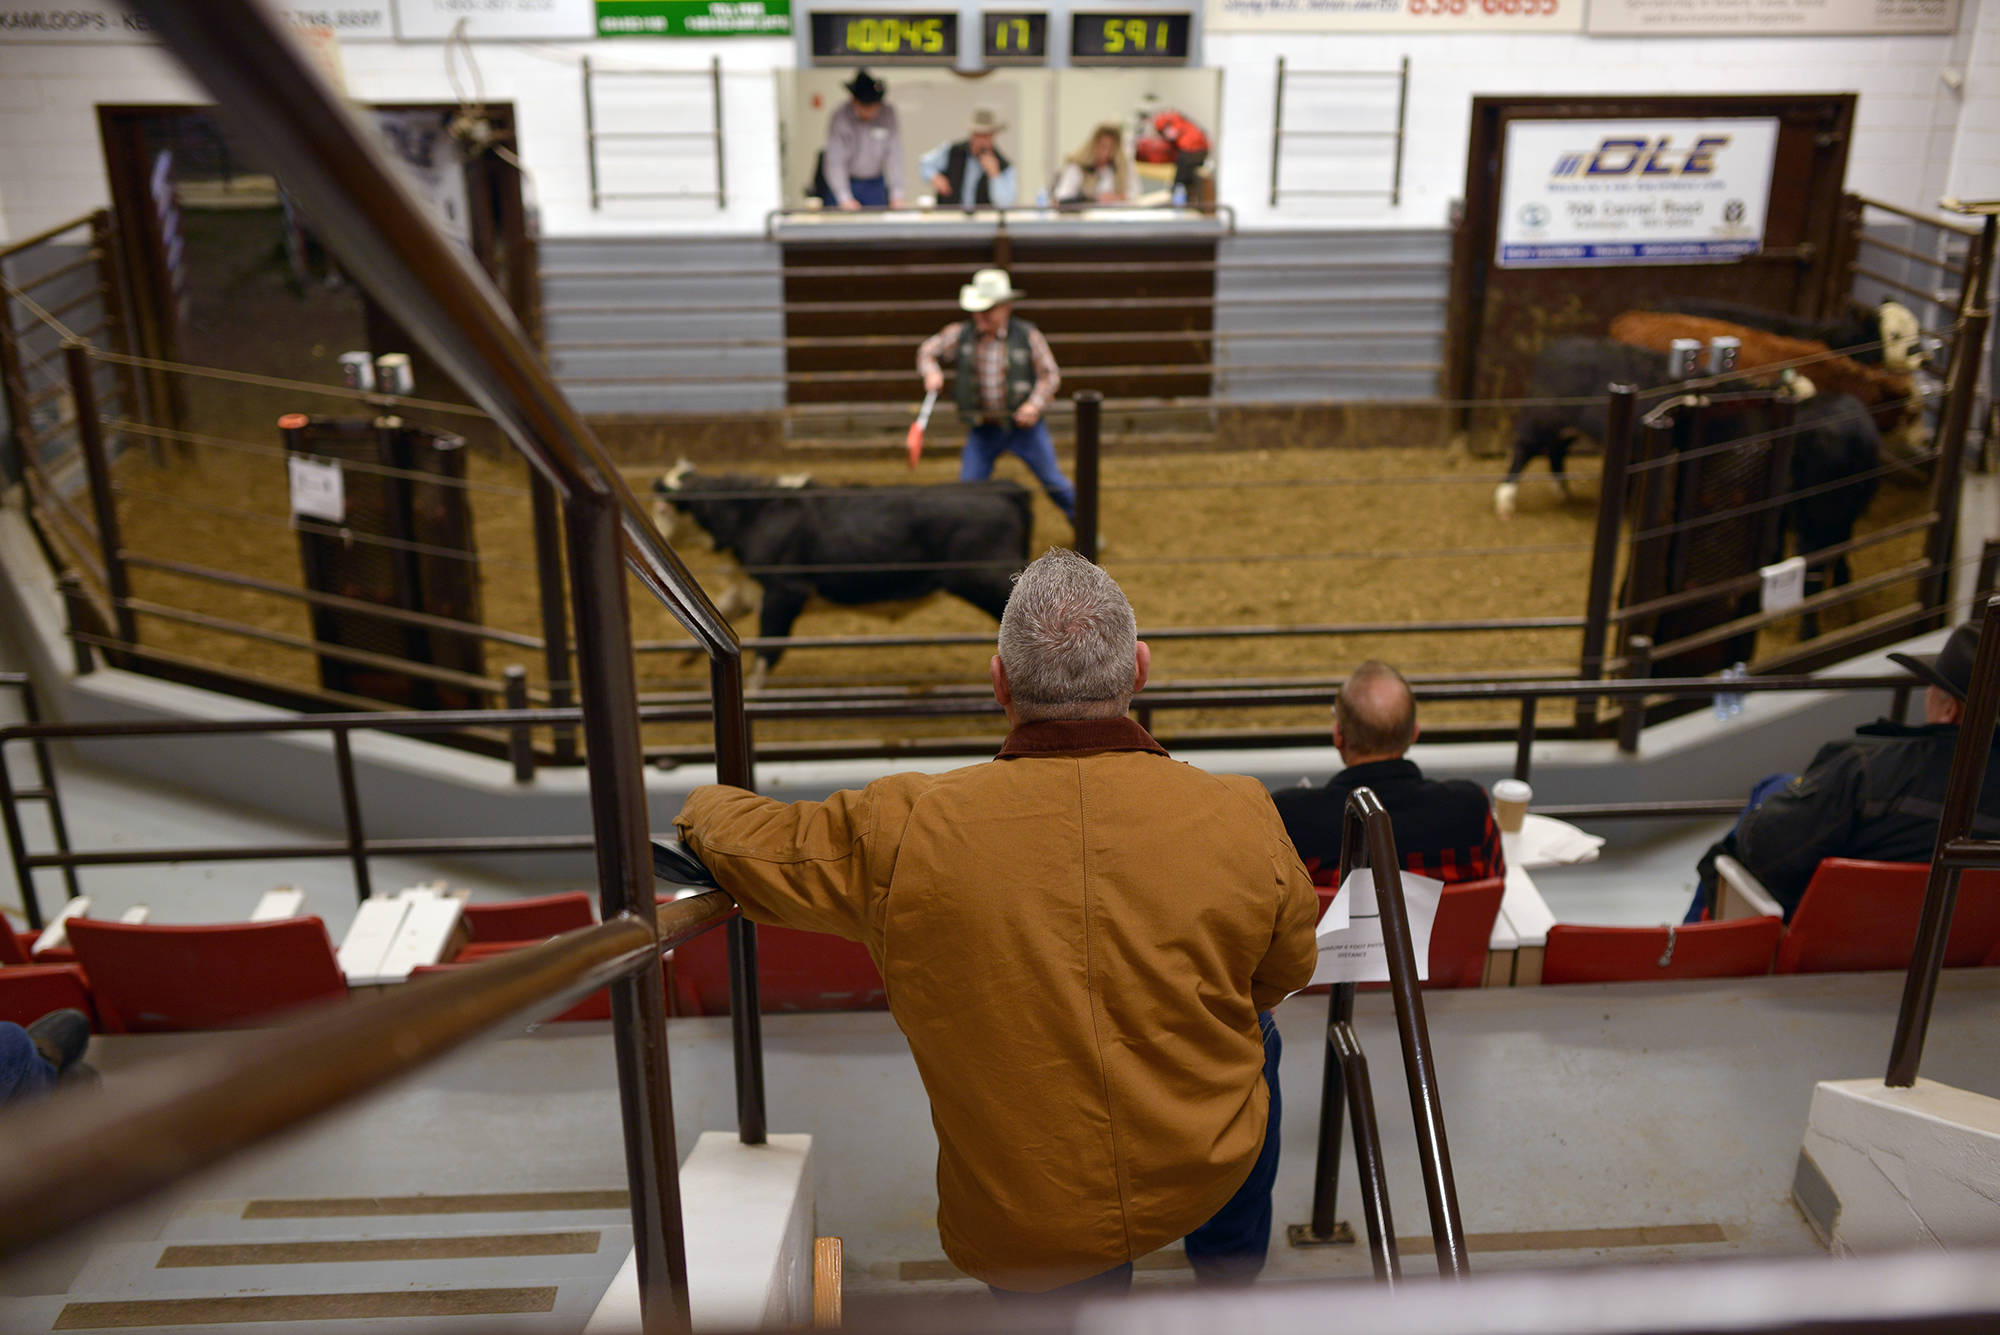 Every Tuesday, Cory Lepine is found at BC Livestock Producers Co. in Kamloops, where cattle are being auctioned. There, he meets with farmers, industry leaders and brand inspectors, and oversees auctions. (Phil McLachlan - Black Press Media)